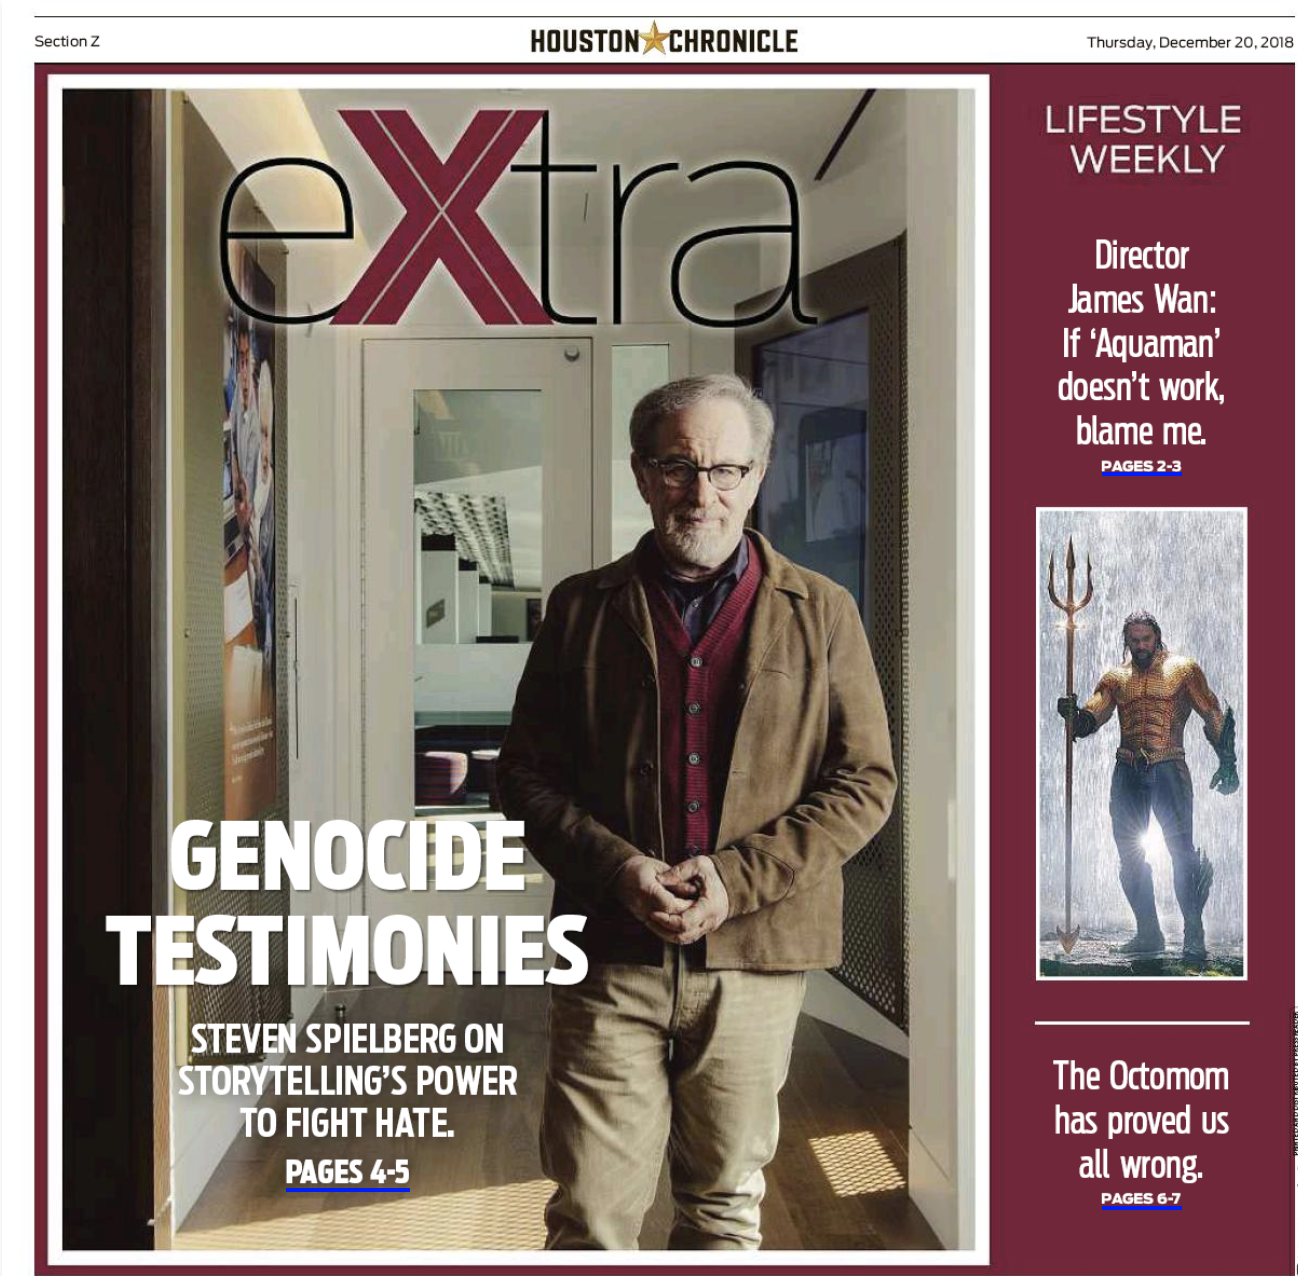 HoustonChronicle_Genocide-Testimonies-Steven-Spielberg-on-storytelling_s-power-to-fight-hate_20_12_18Cover